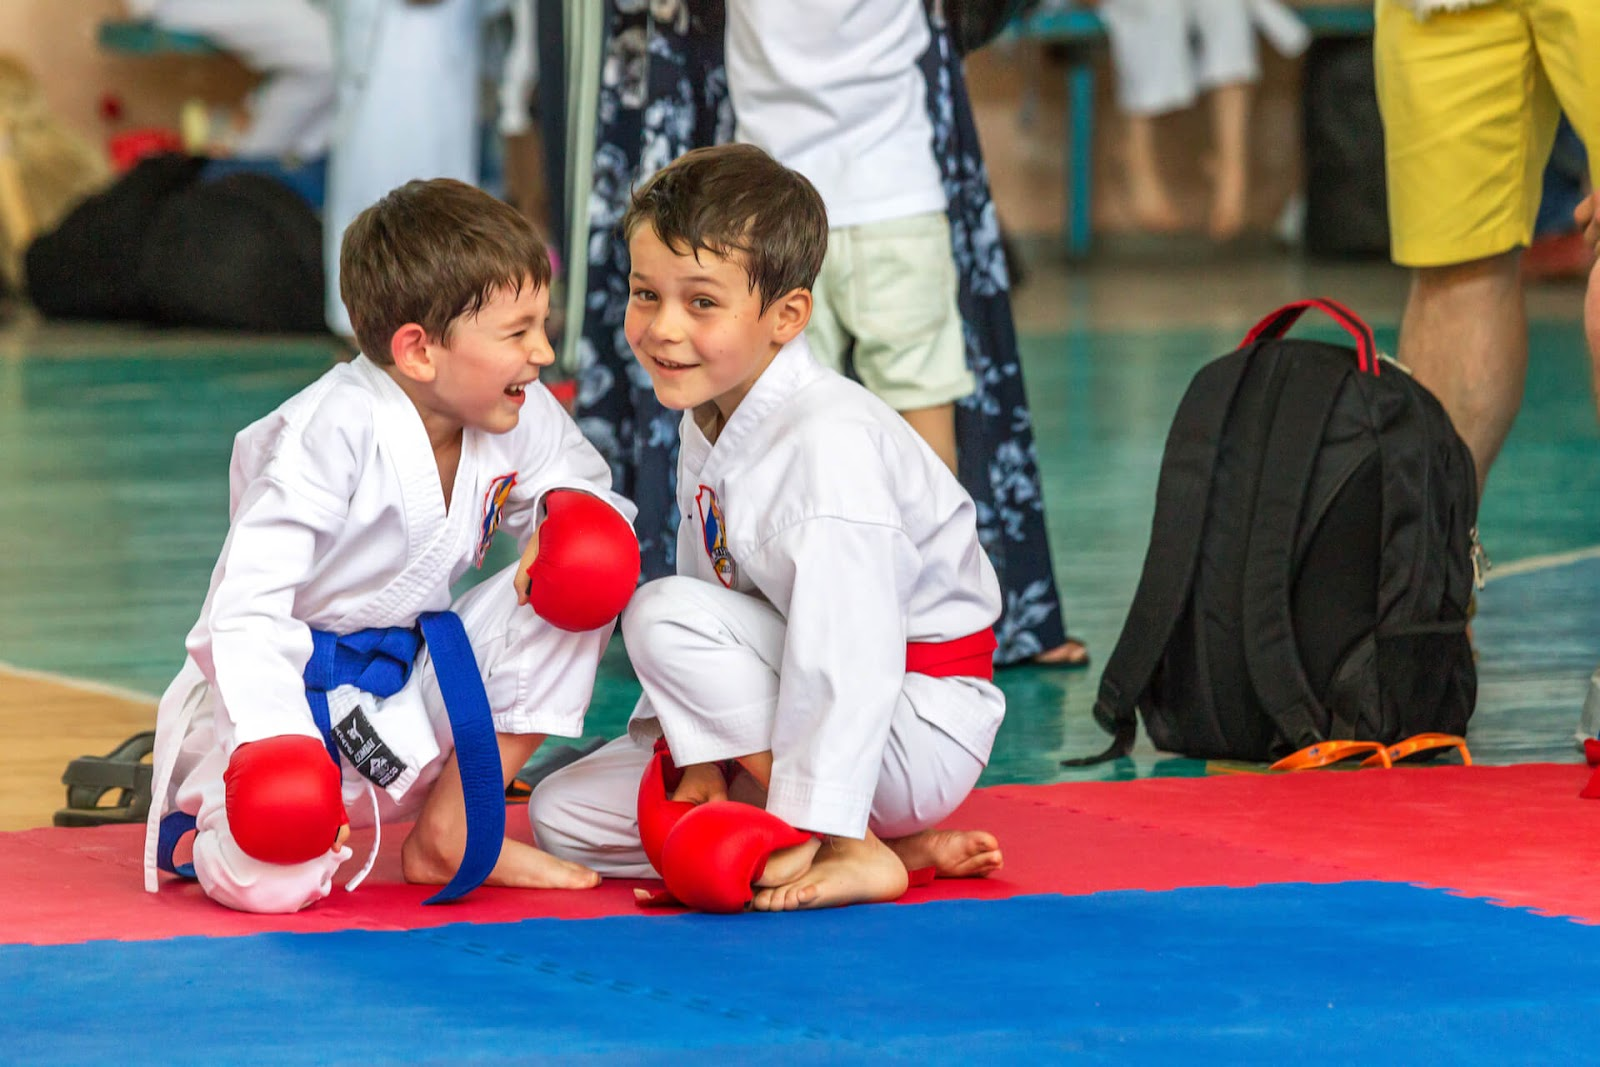 Two boys in karate gear laughing